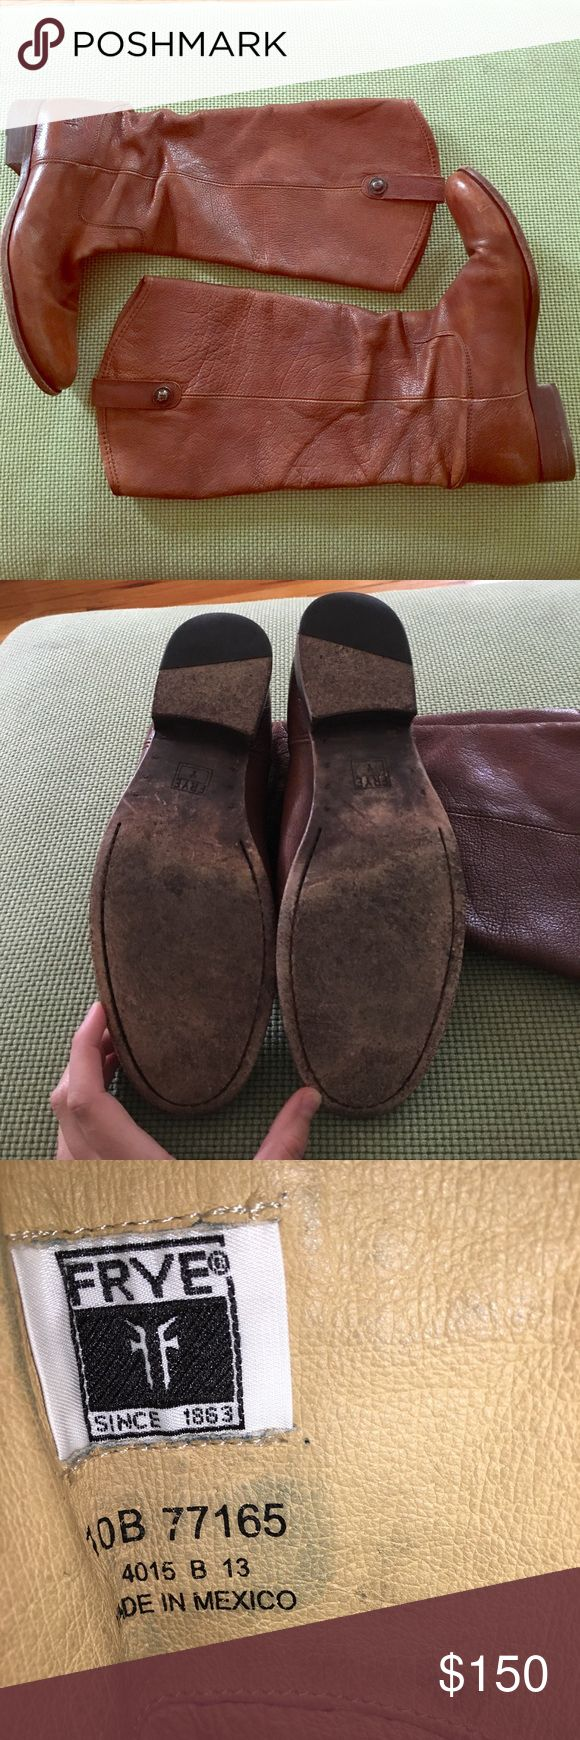 Frey Melissa Button Boots Frye Melissa Button Boots in Size 10. Cognac color leather. Gently worn for 1 season, these boots have a TON of life left in them! Frye Shoes